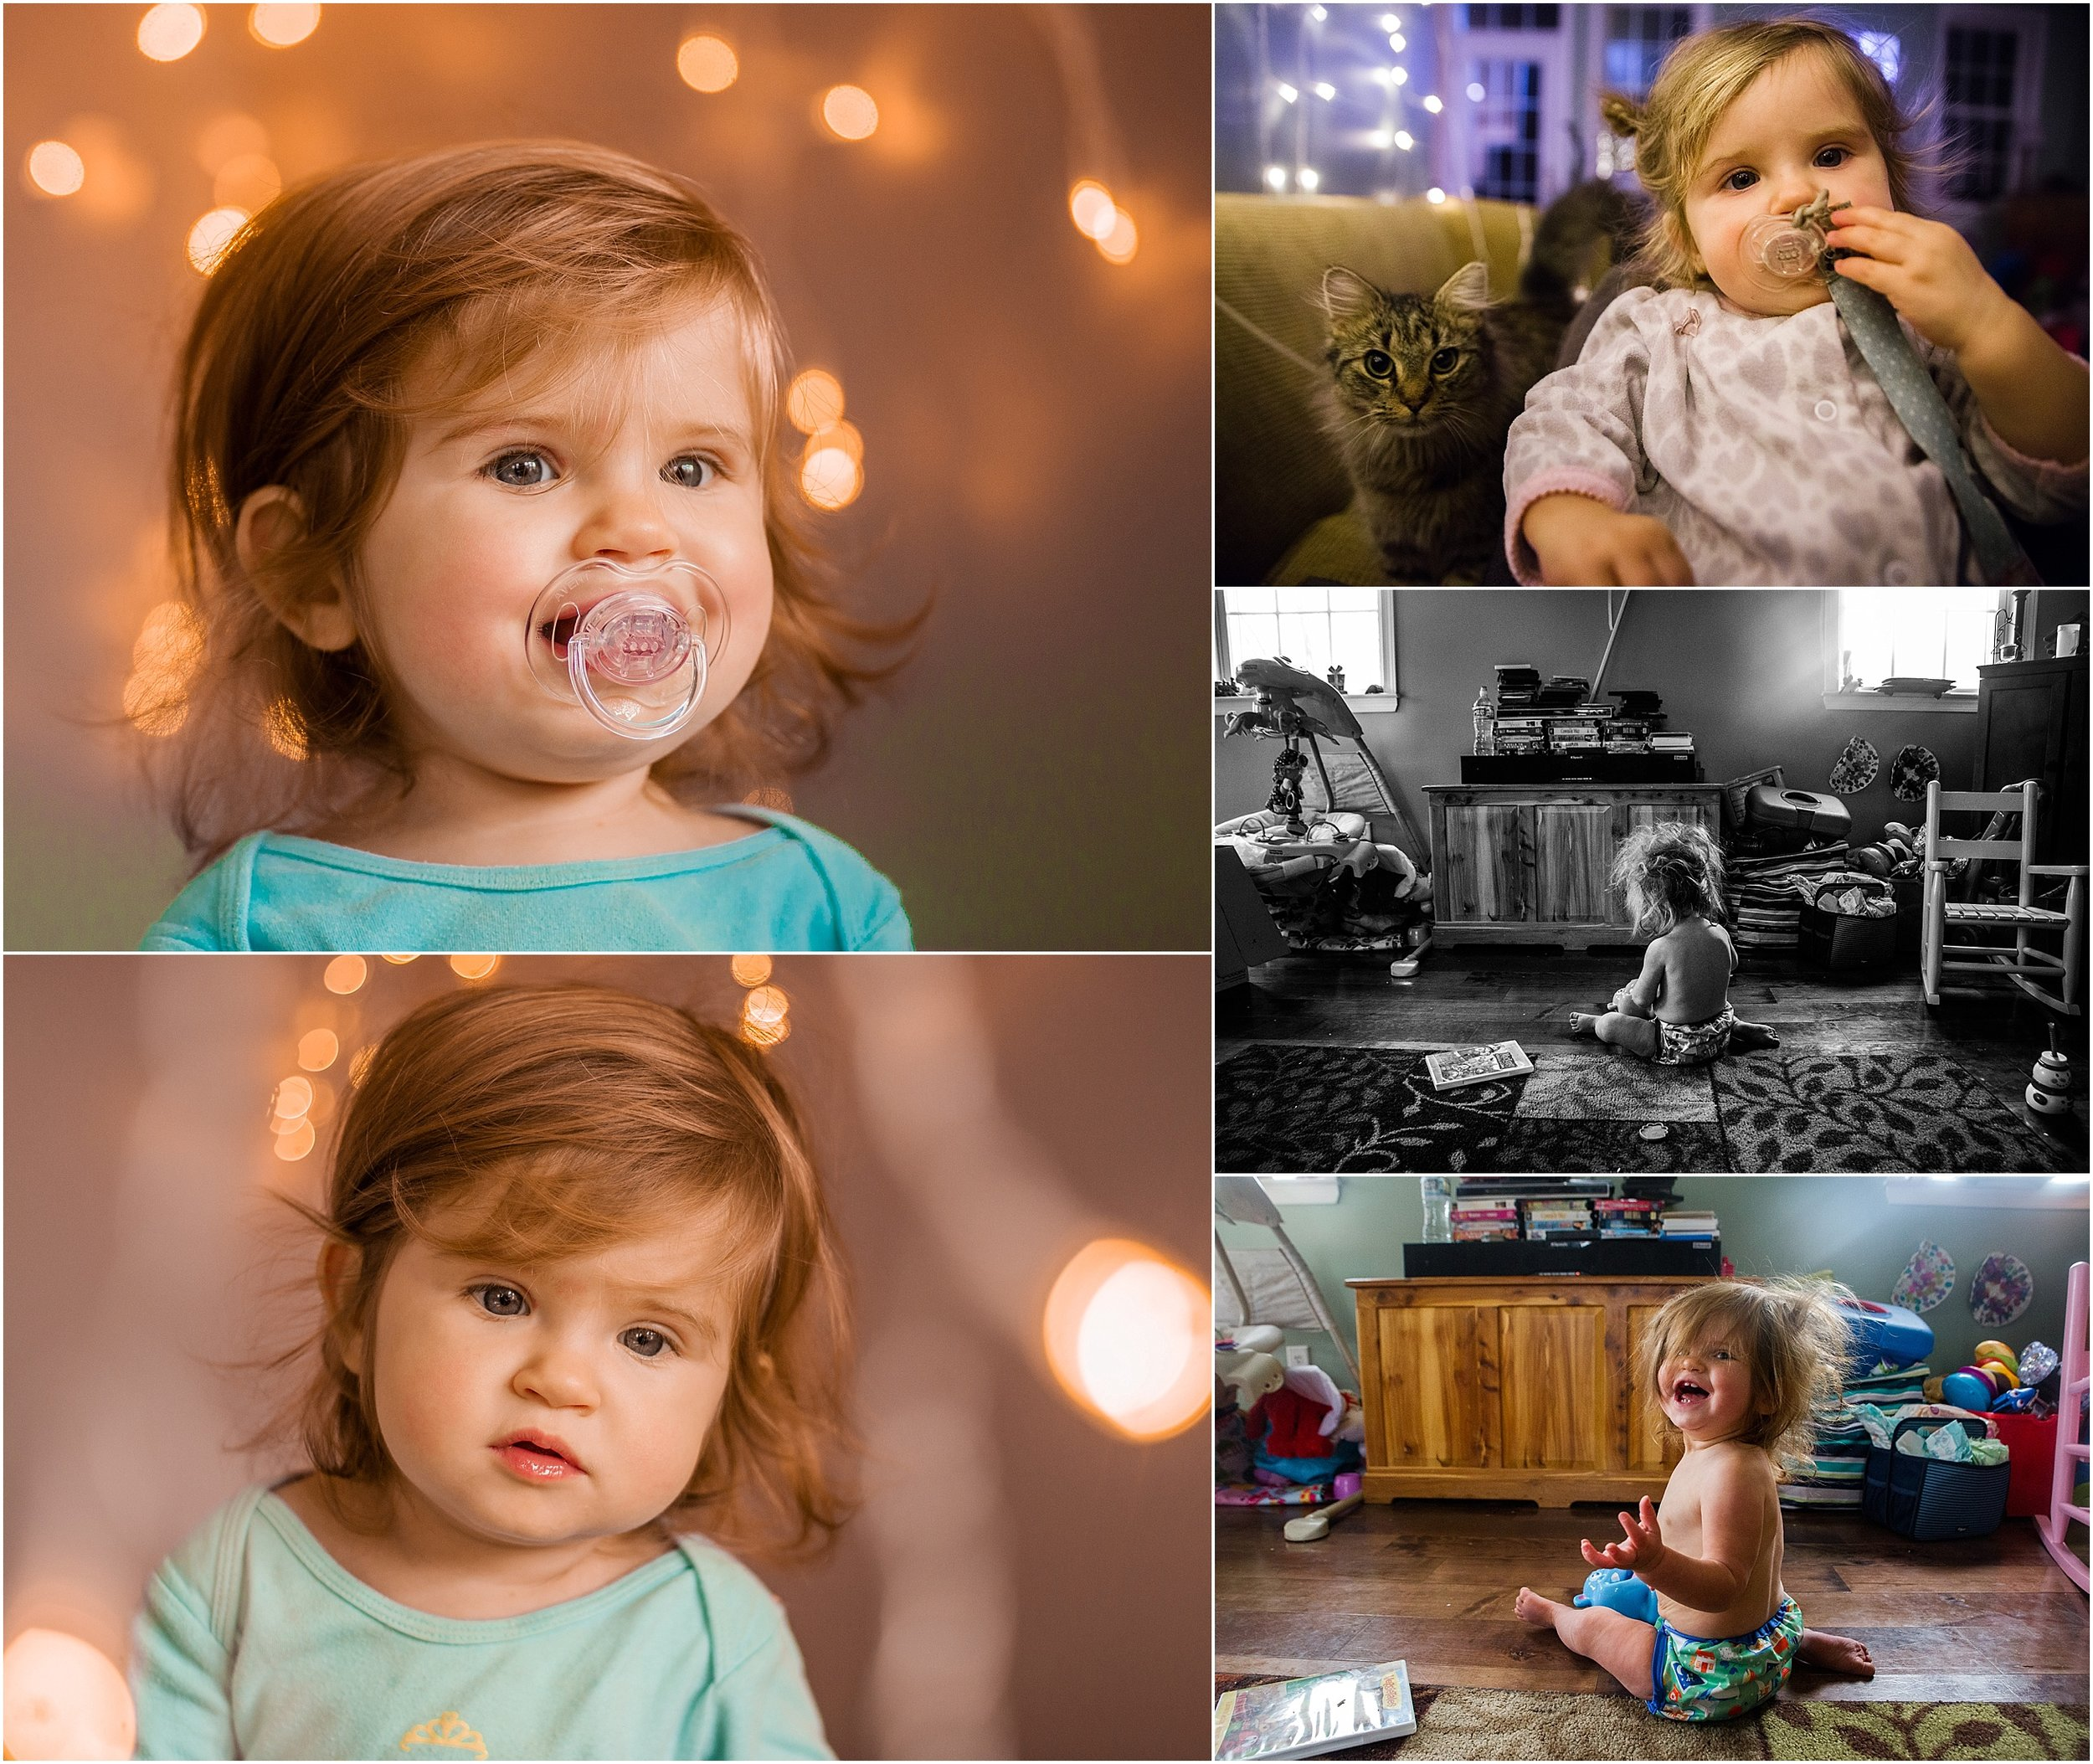 Holli Pool Photography, Christmas lights, baby girl, messy hair